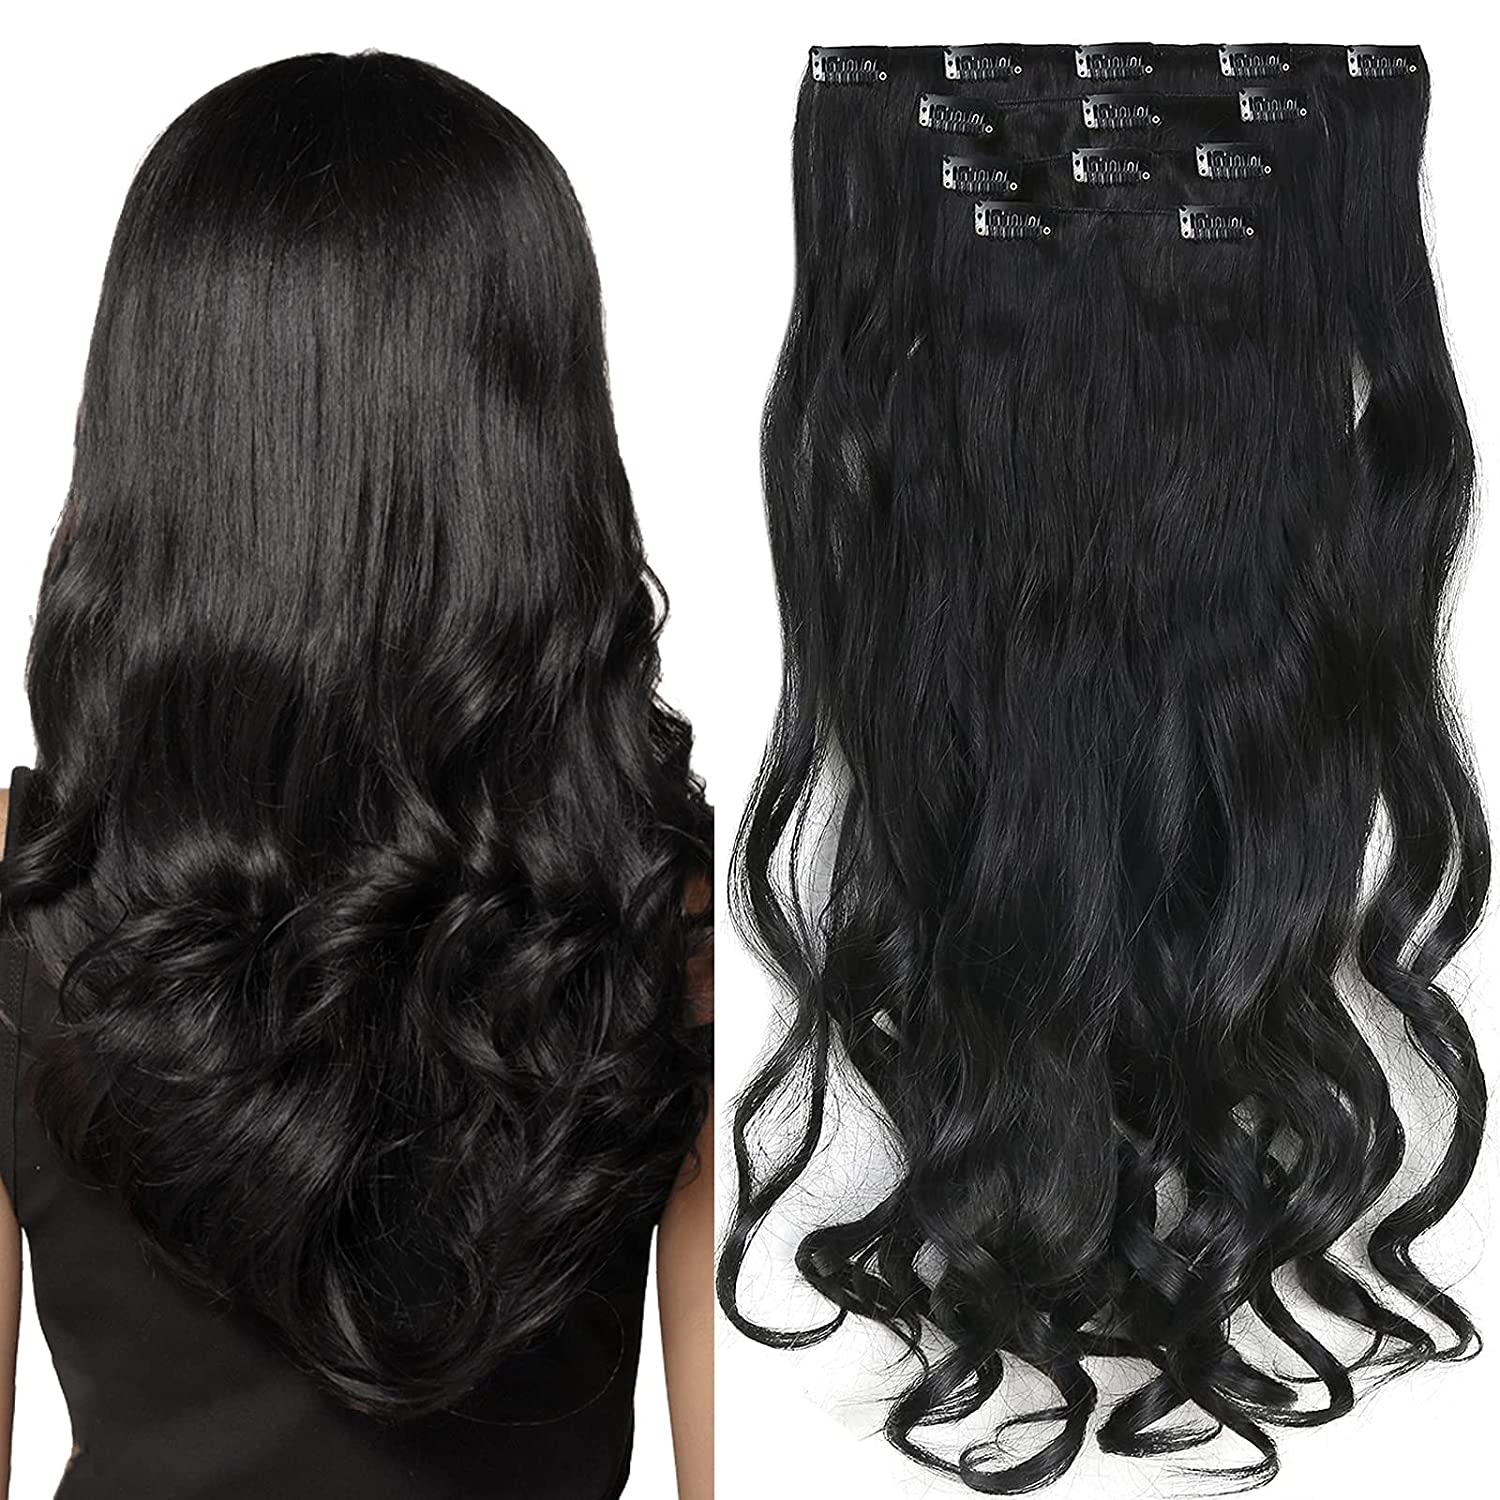 Clip in Hair Extensions 4 Pieces 22 Wave Long Dealing Los Angeles Mall full price reduction Inch Dark Curly Bl